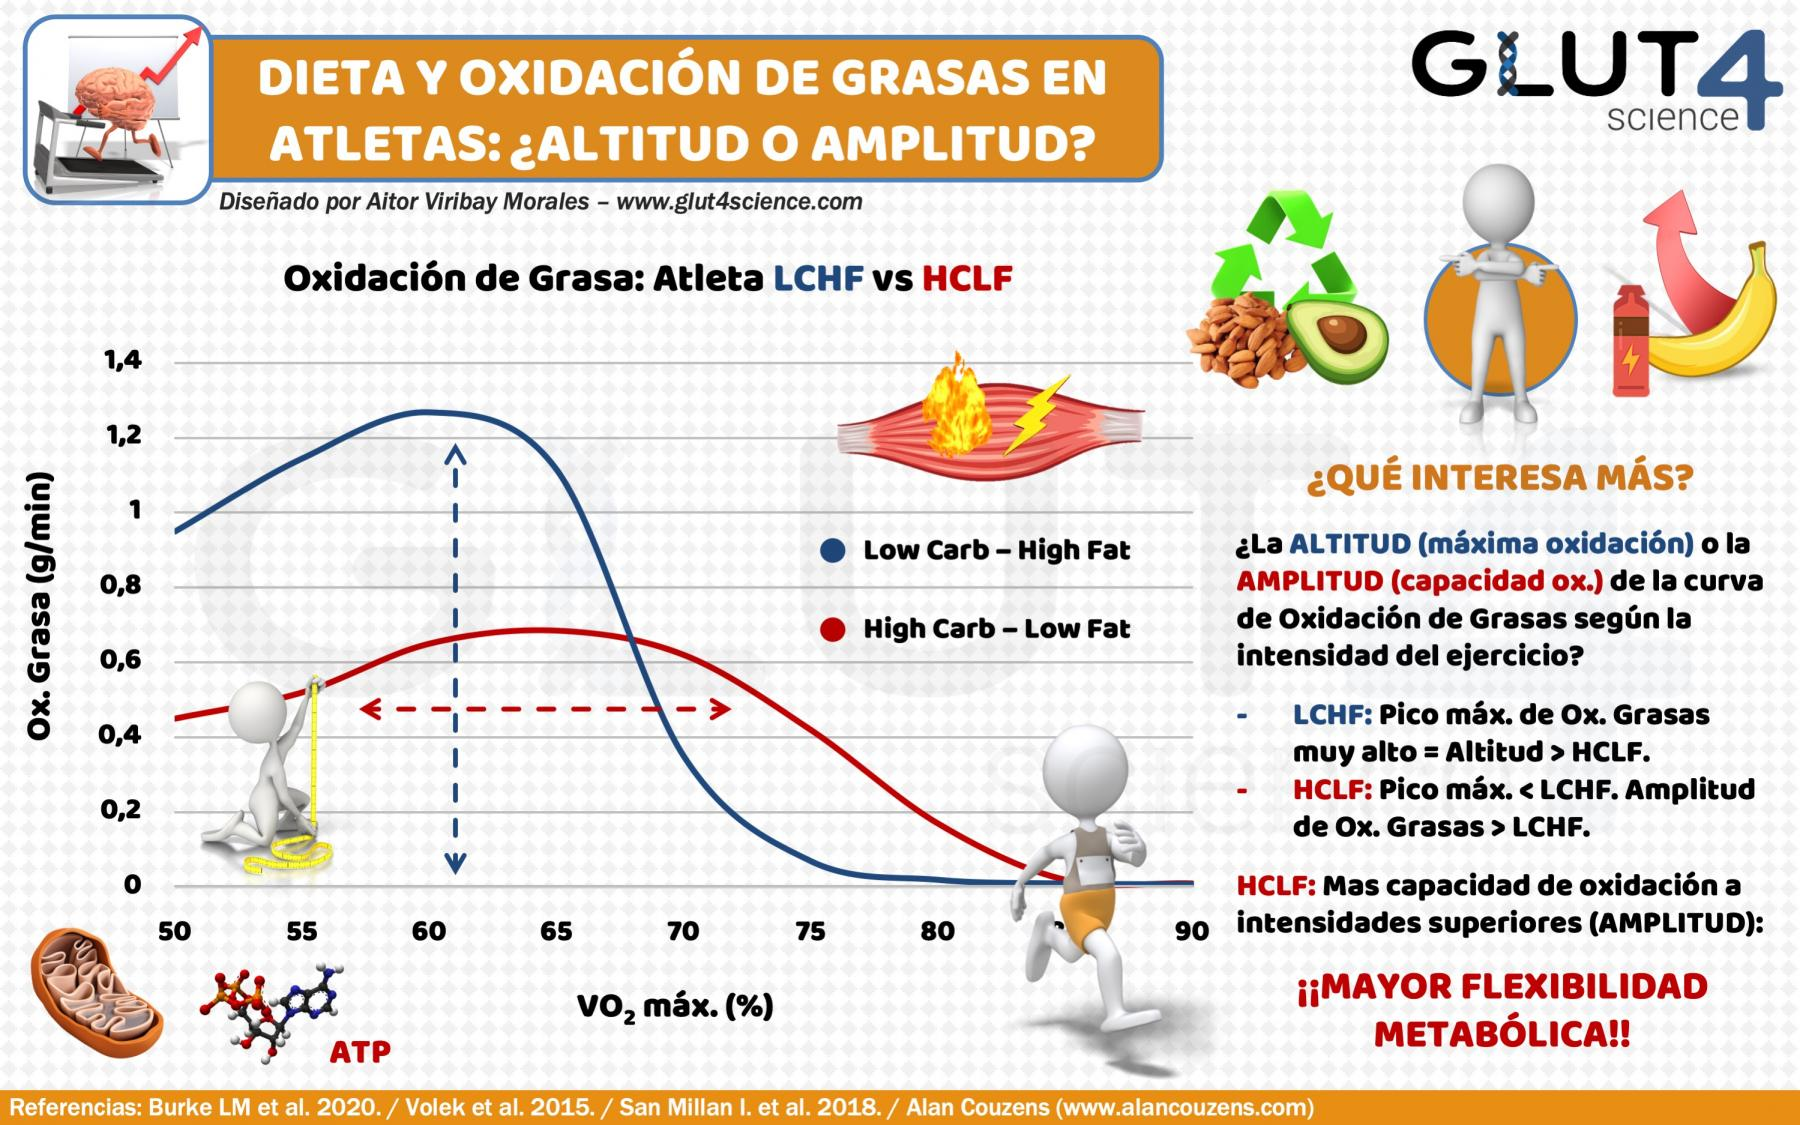 Fat Oxidation in Athletes: High Carbohydrate versus High Fat Diet